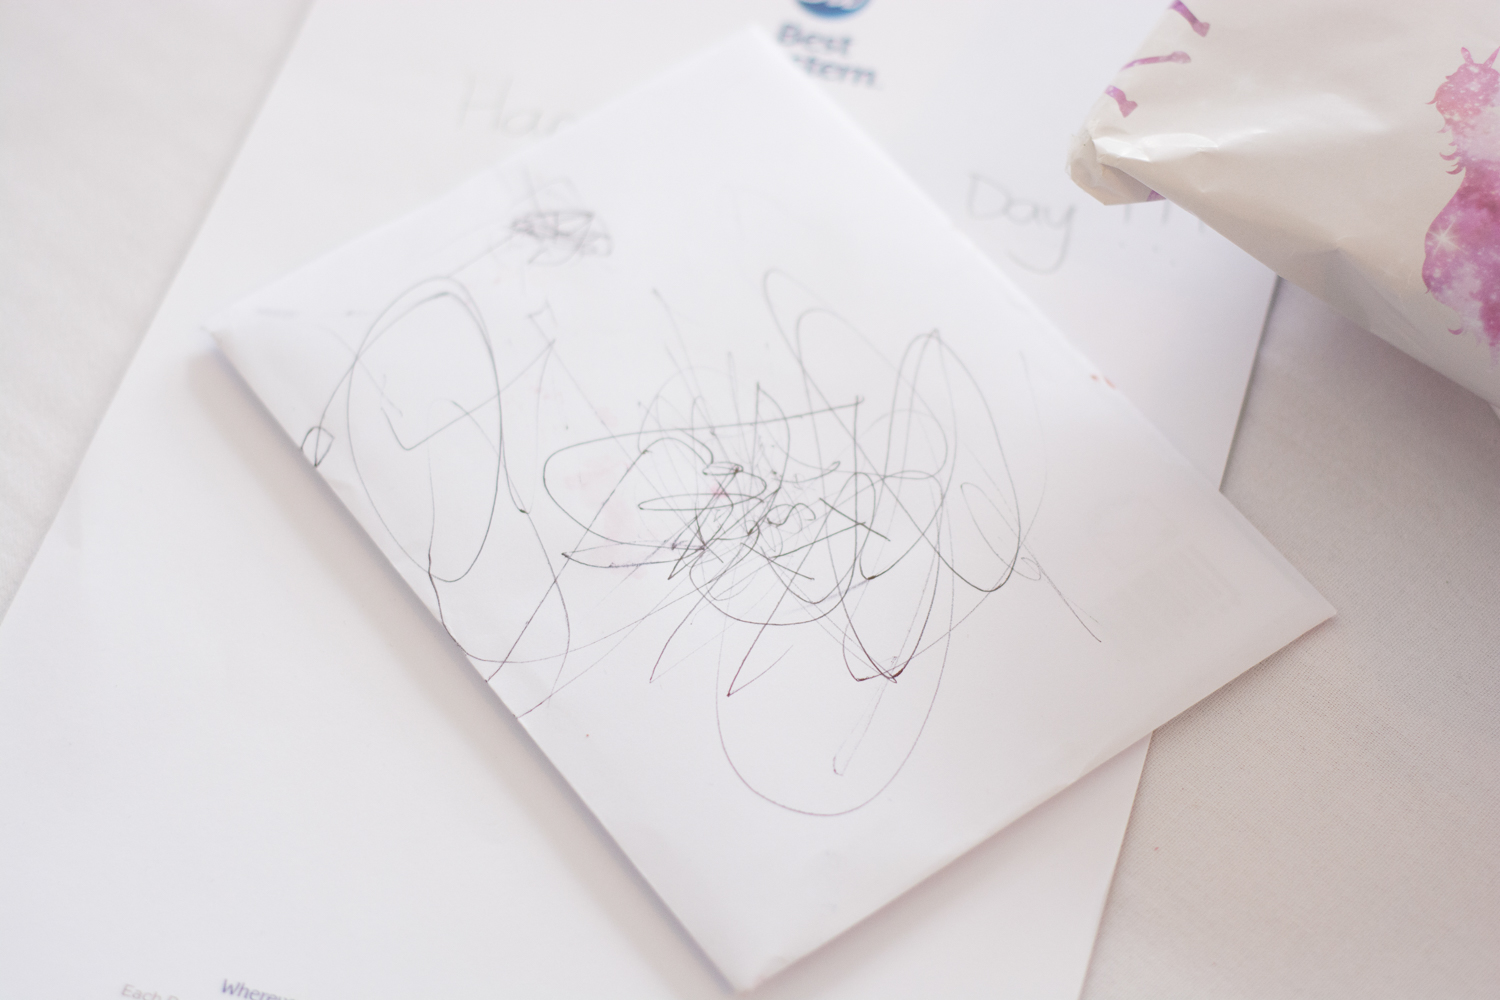 childrens drawings on the table at the lord haldon hotel in devon